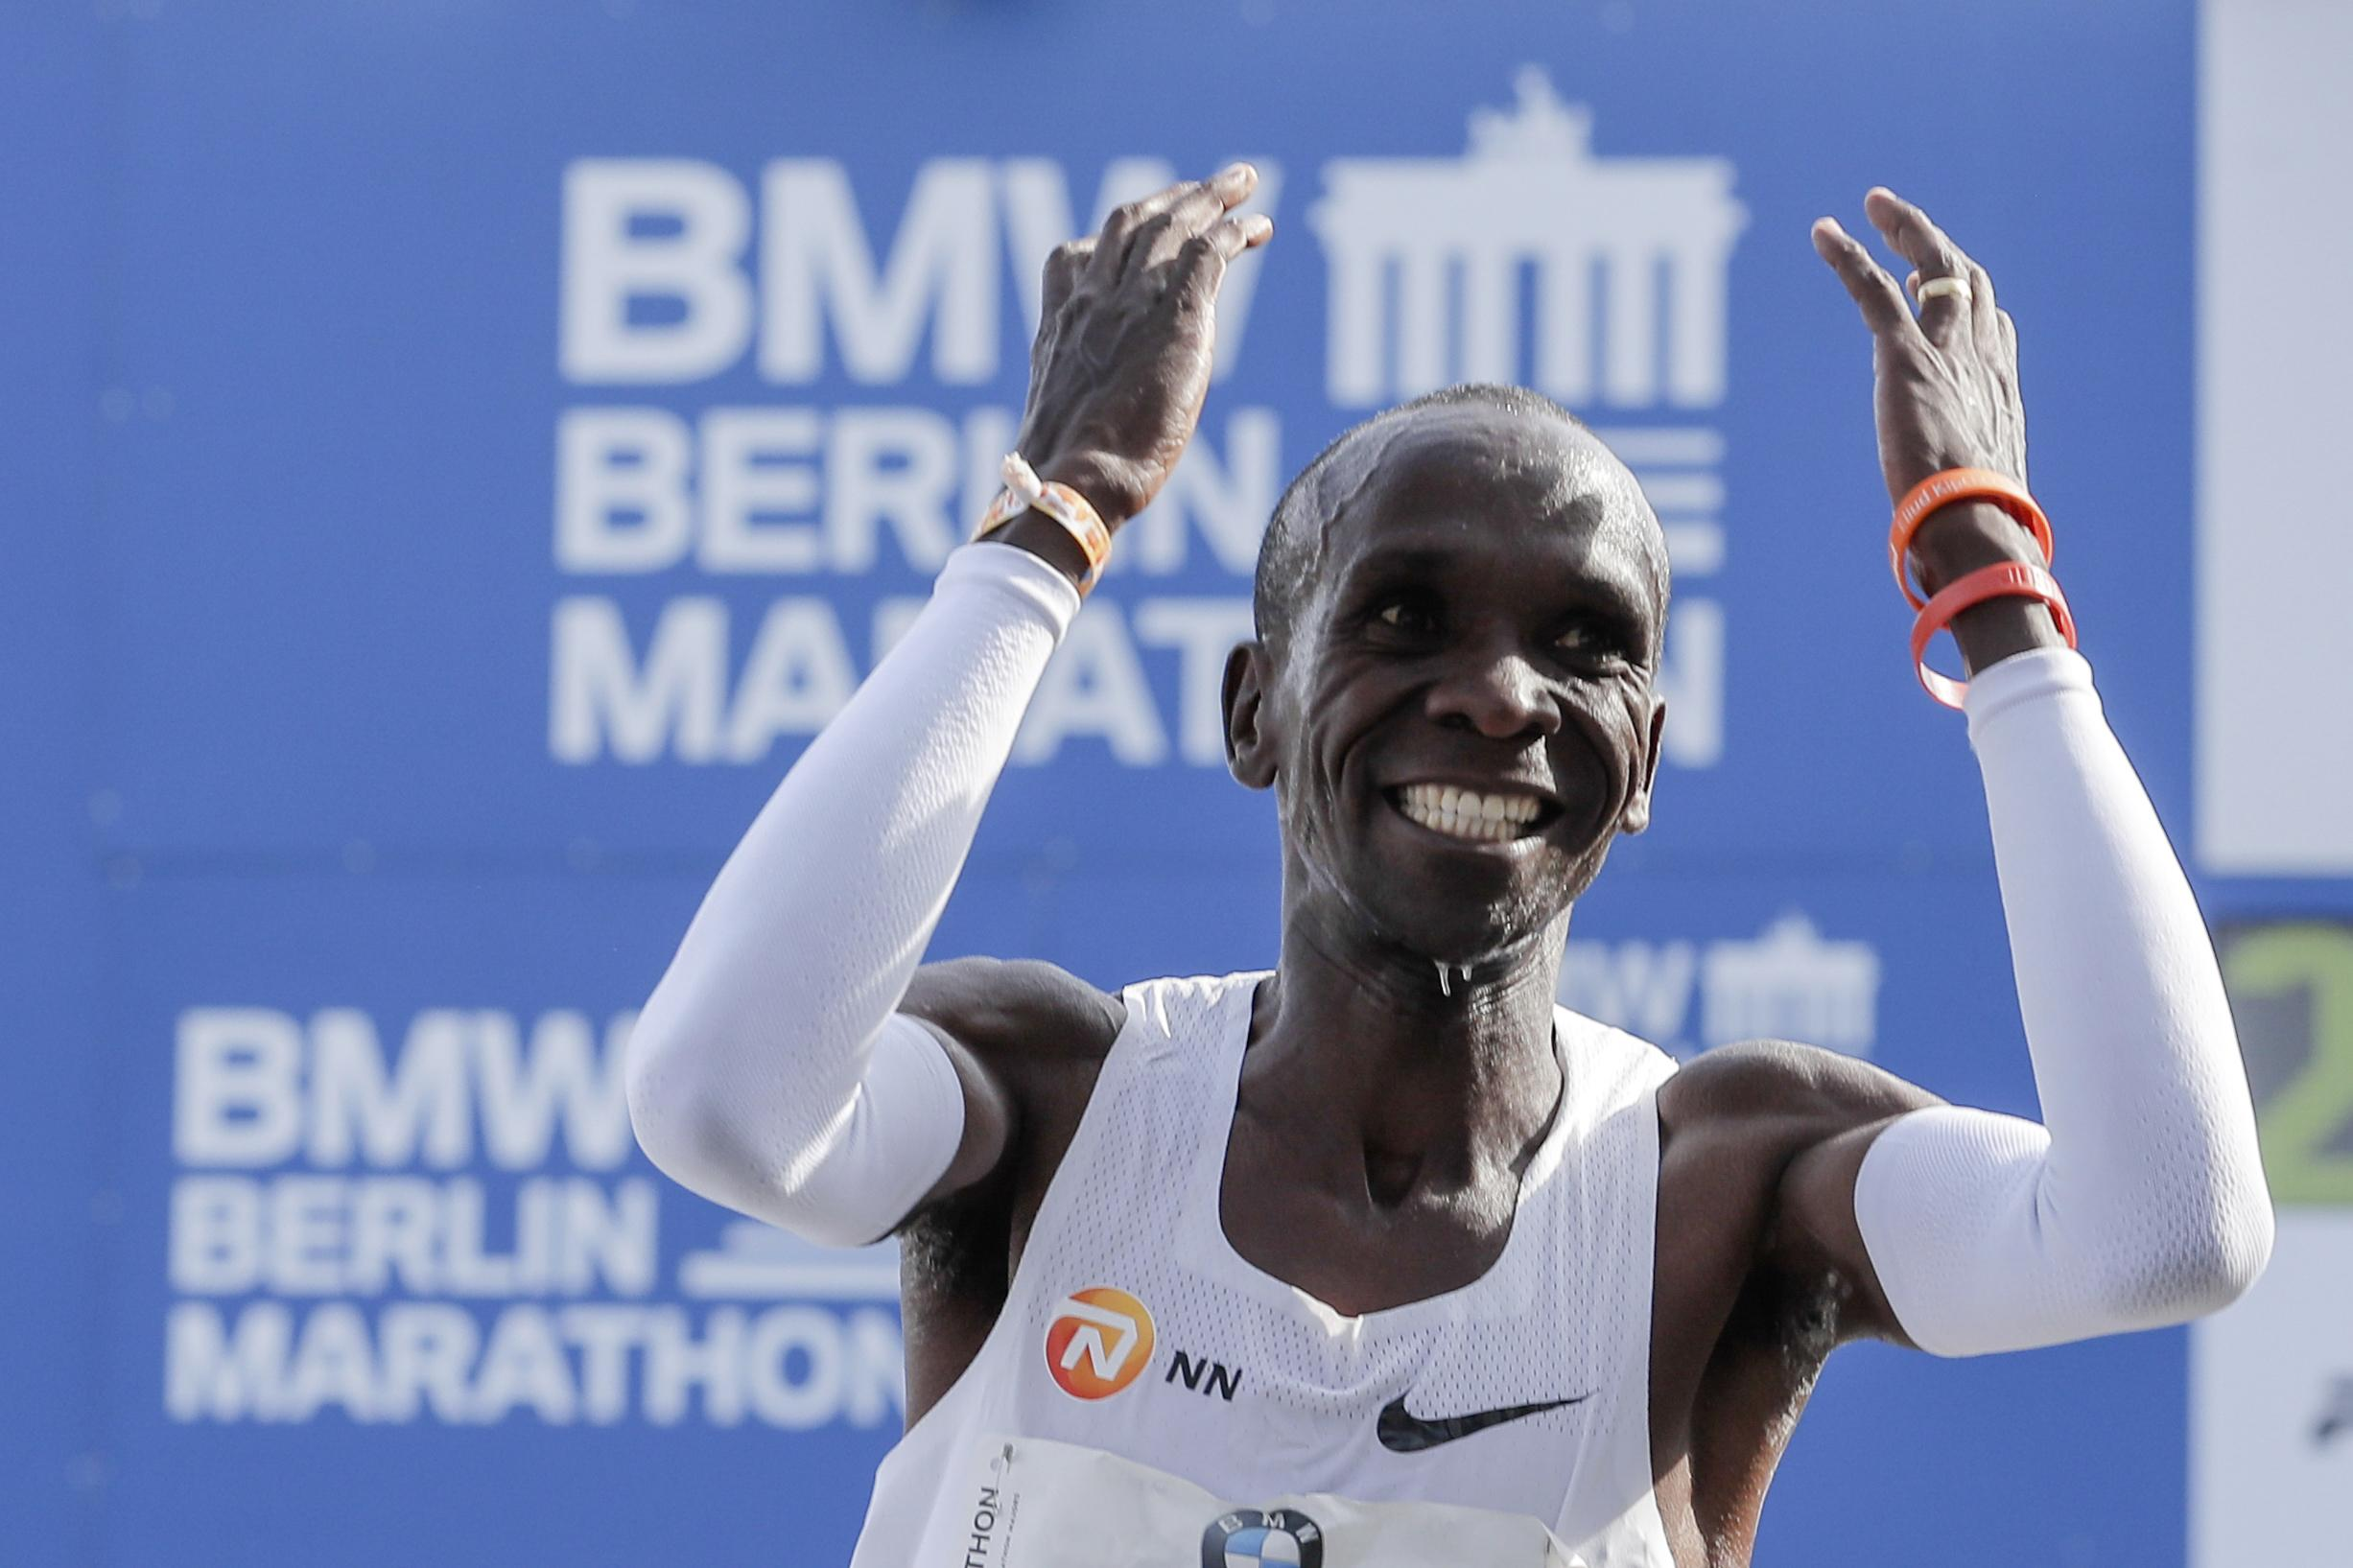 Eliud Kipchoge can hardly believe it after he breaks the world record after crossing the line in Berlin